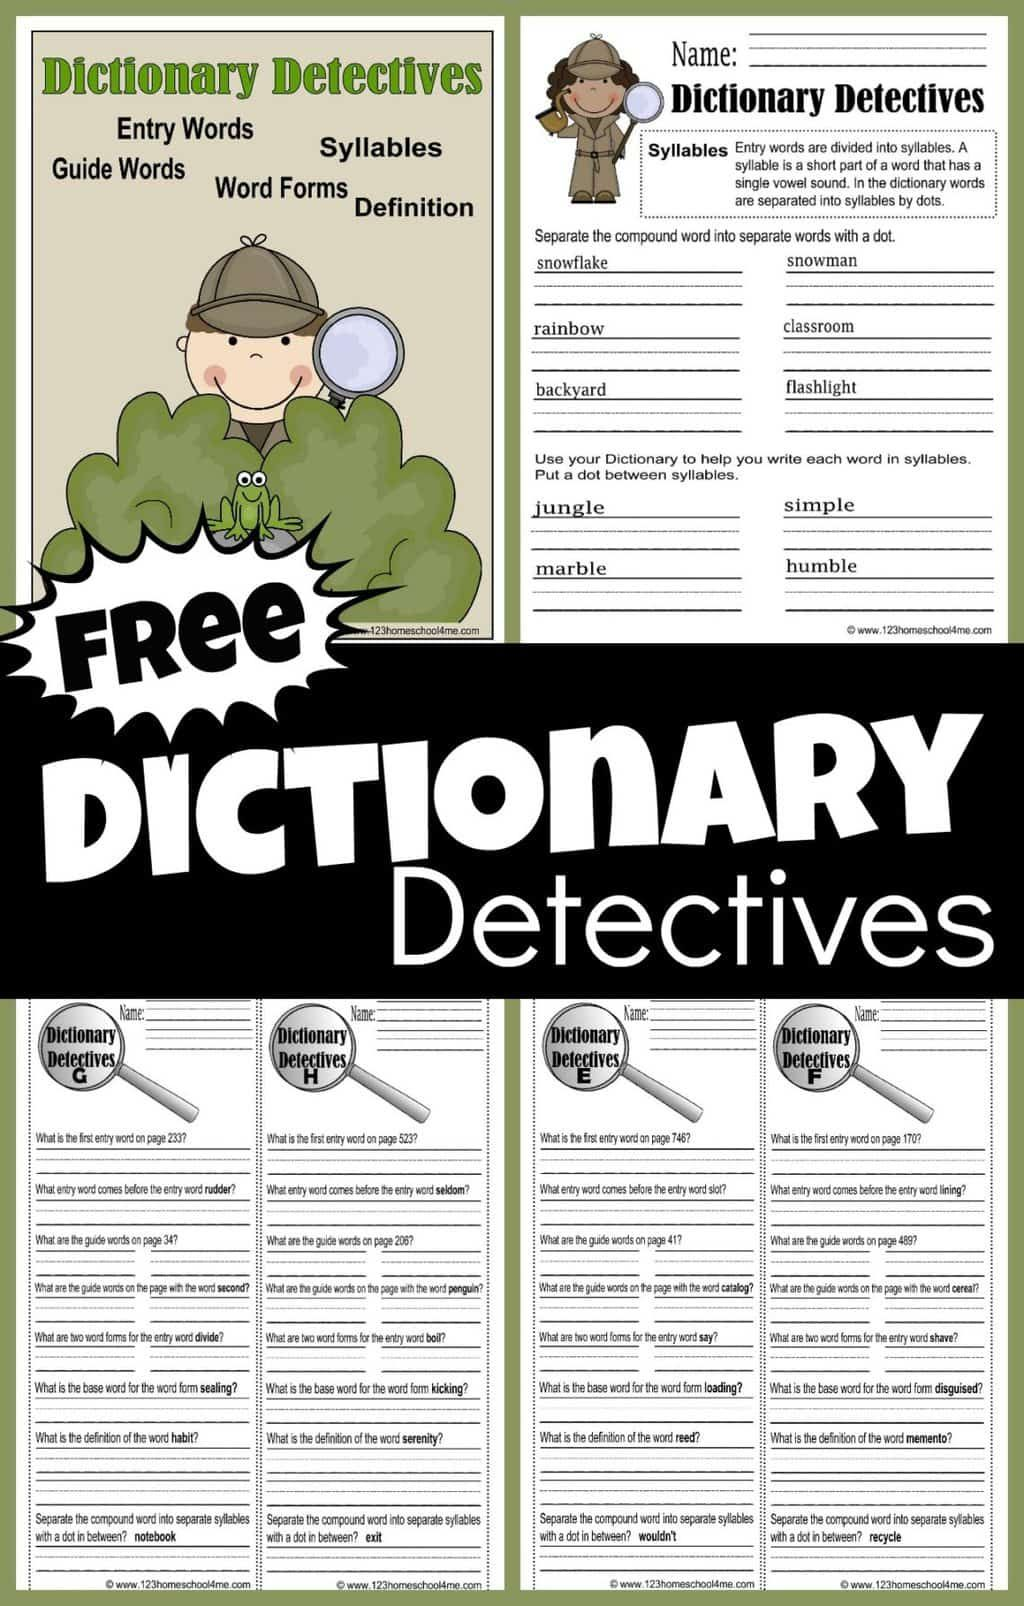 Free Dictionary Detective Worksheets For Kids In